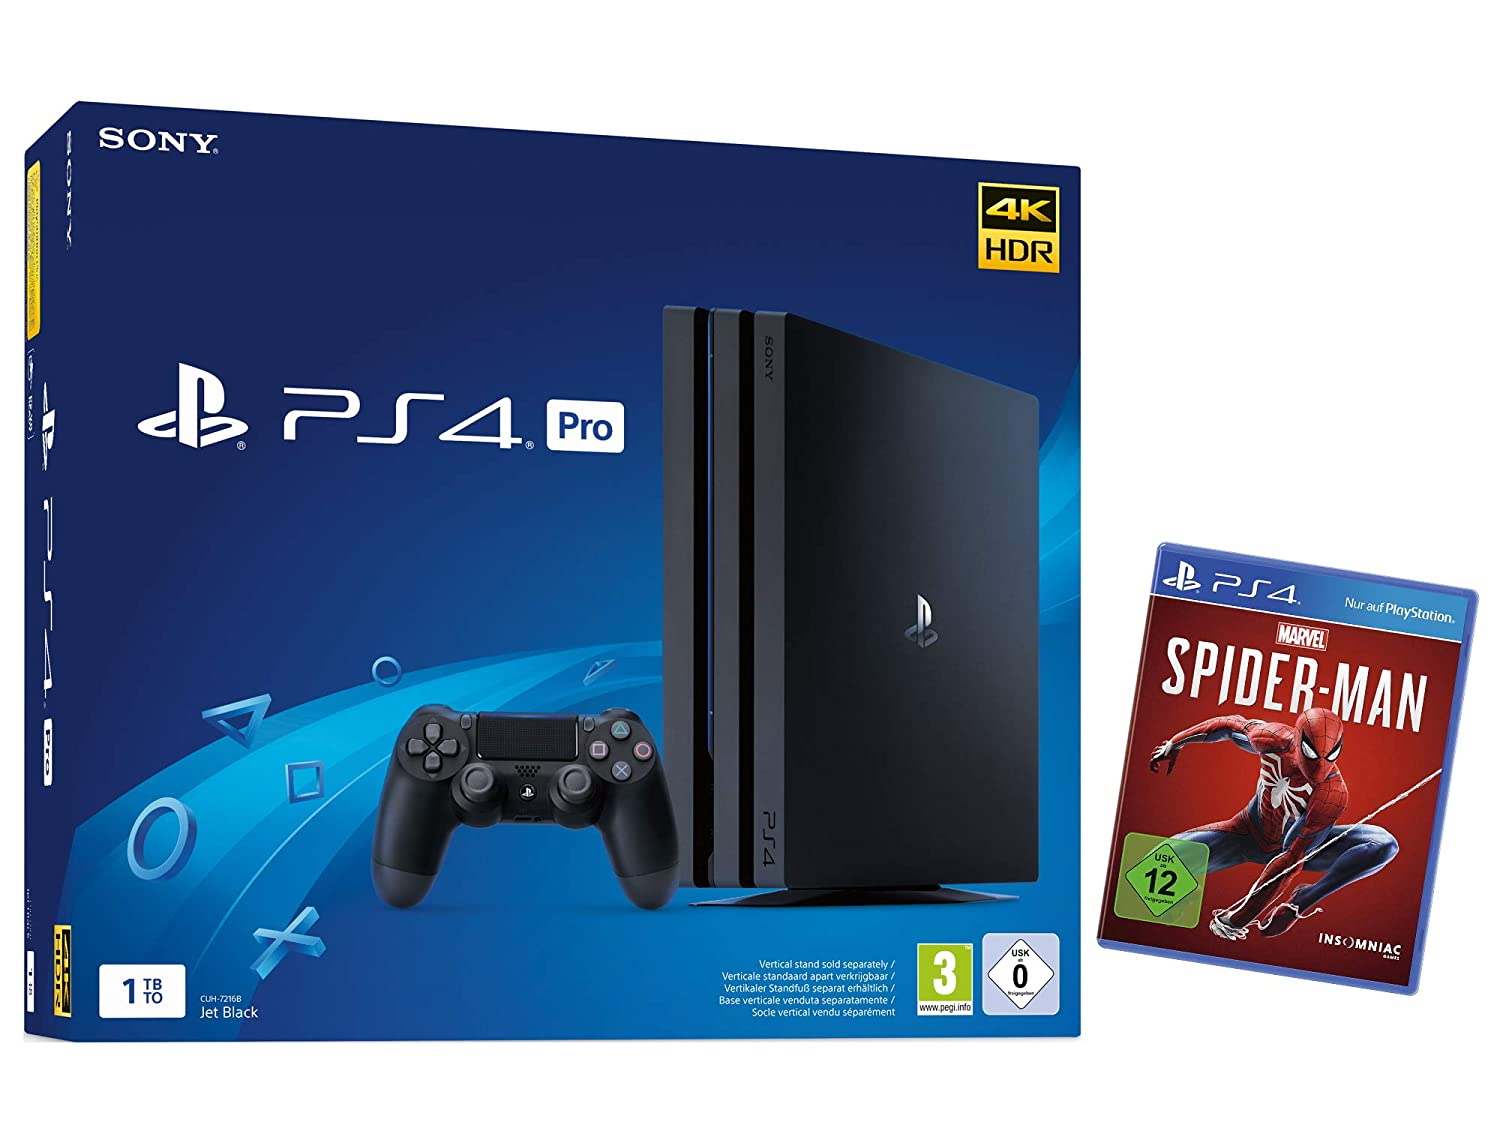 [amazon.de] Playstation 4 Pro 1TB + Spiderman za 349,99€